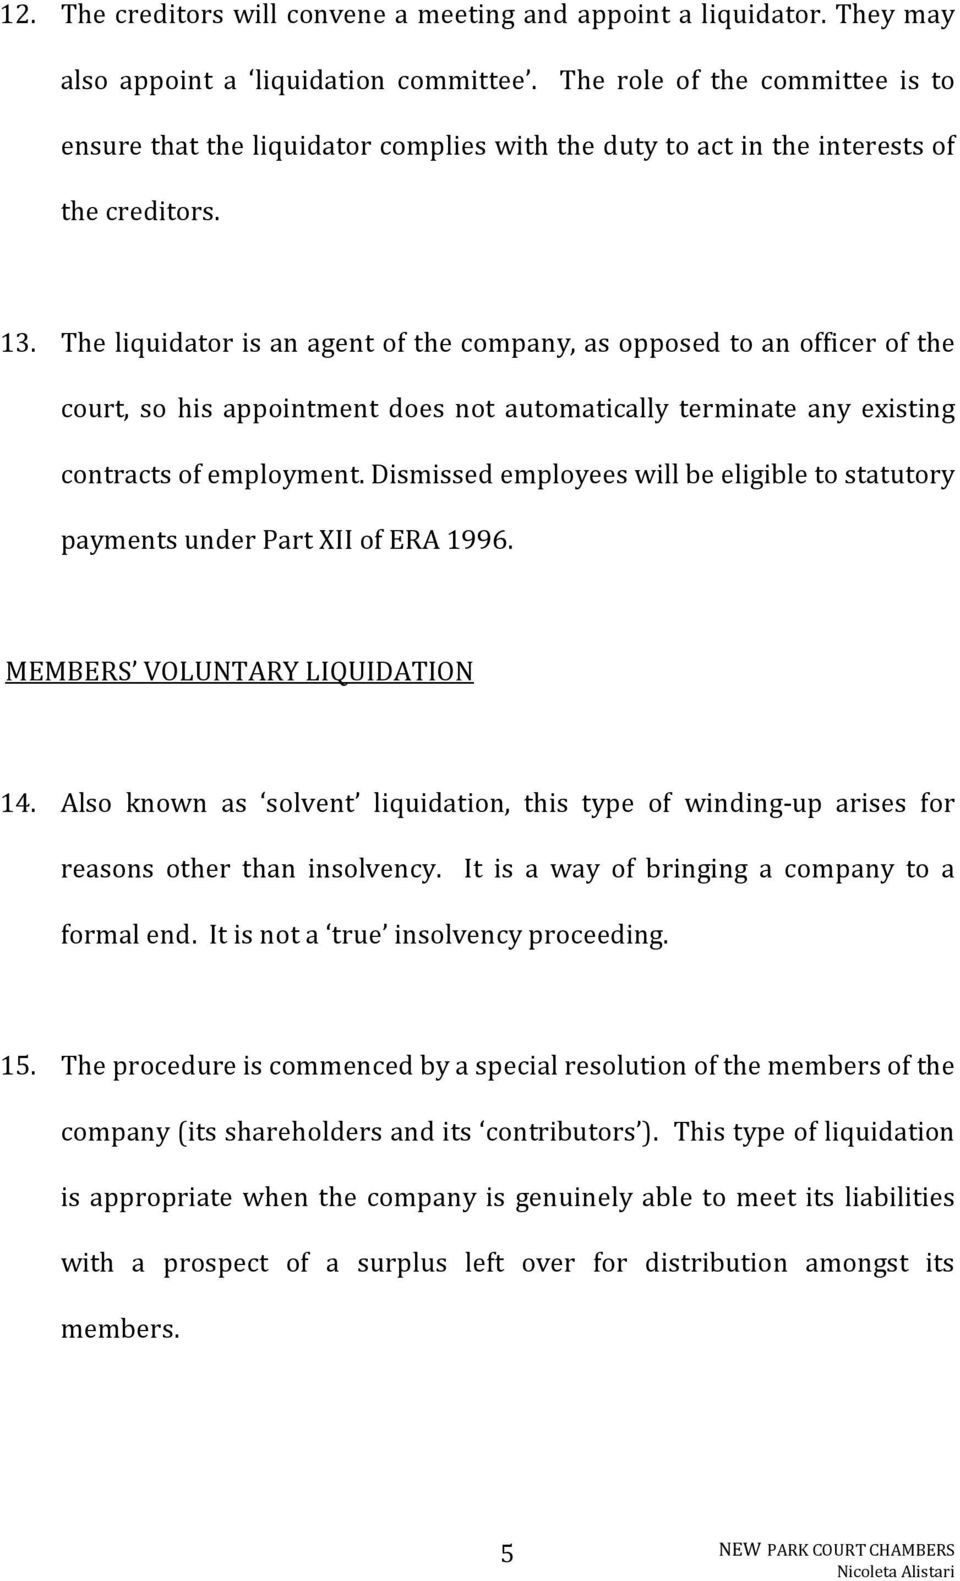 The liquidator is an agent of the company, as opposed to an officer of the court, so his appointment does not automatically terminate any existing contracts of employment.